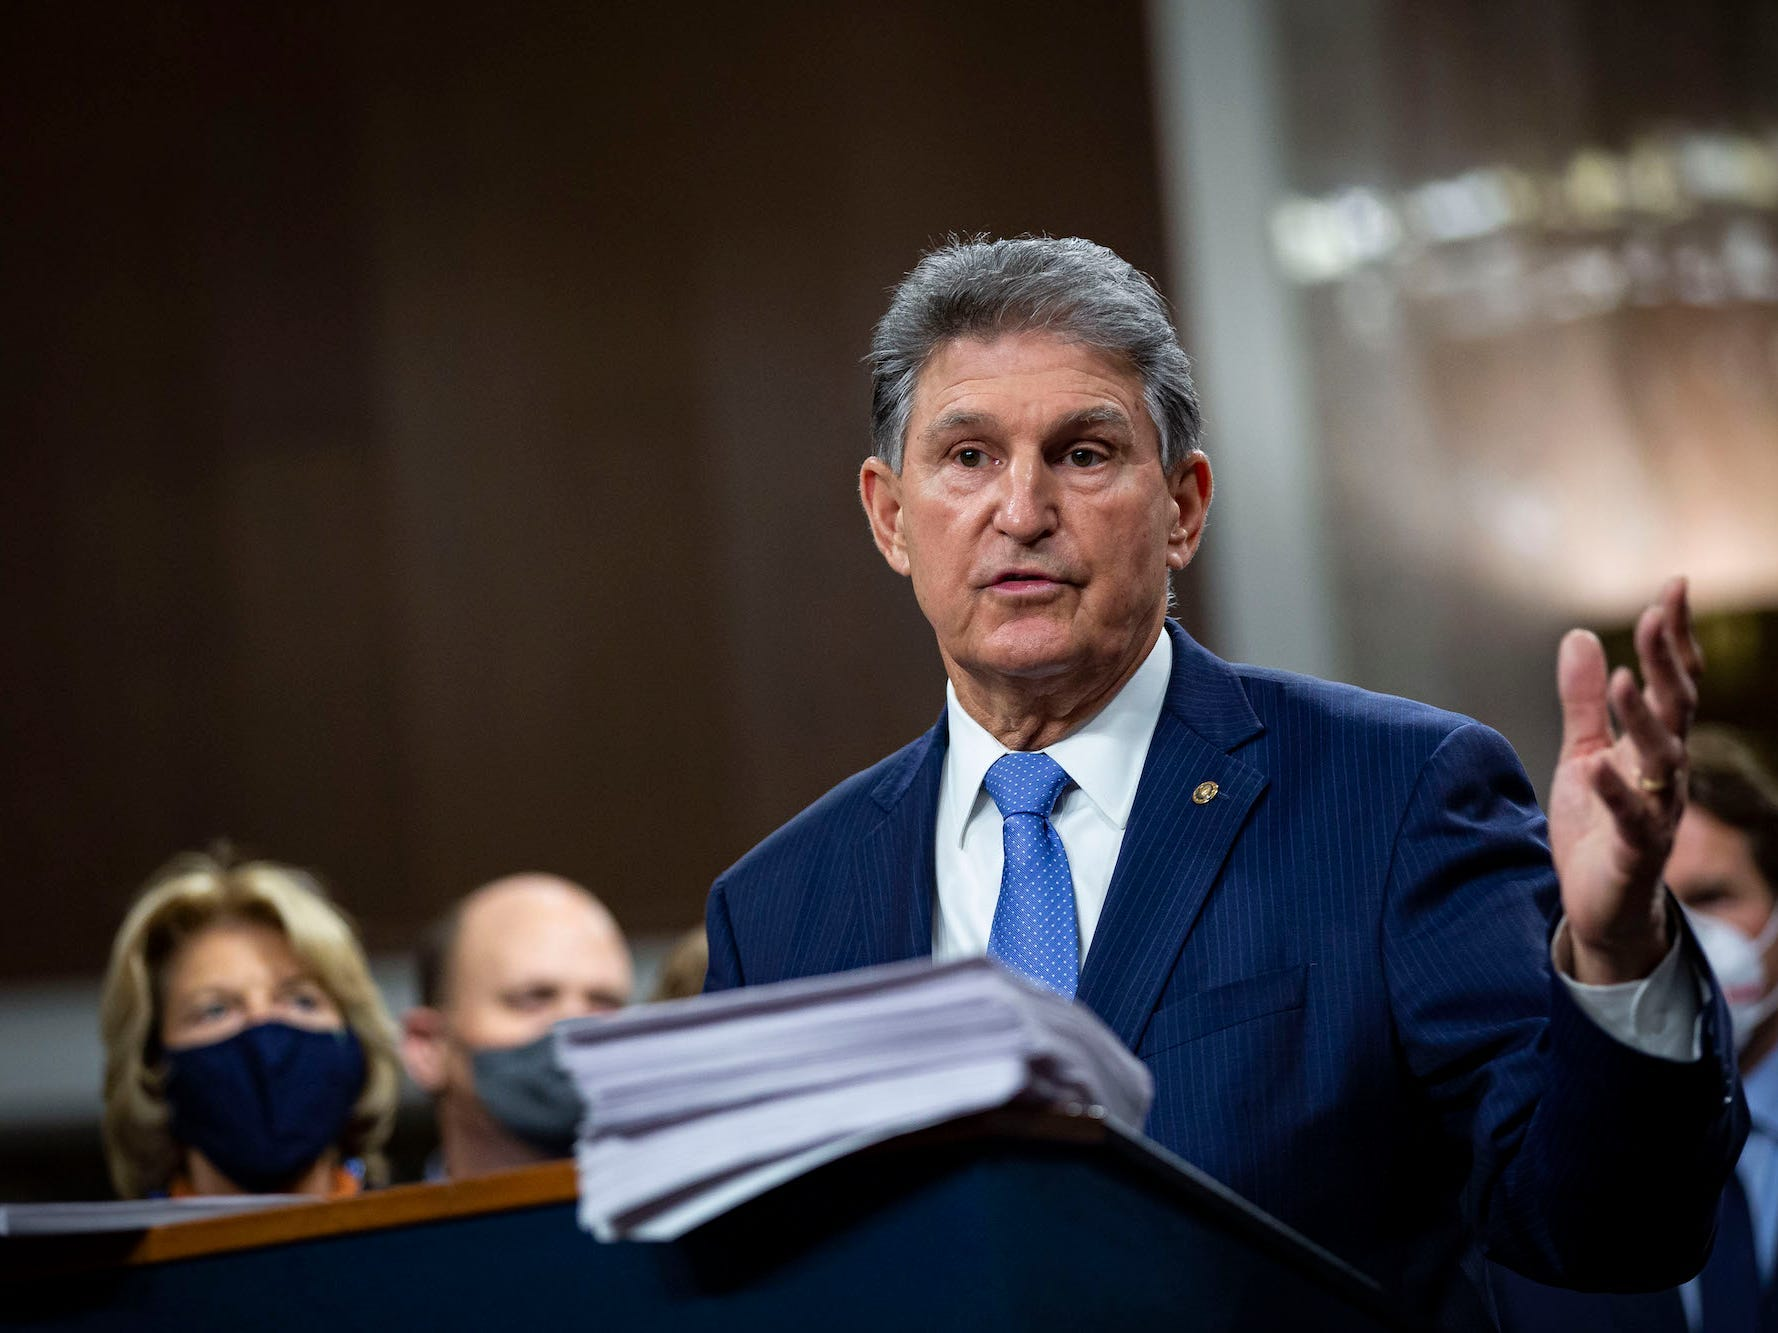 Joe Manchin poses a threat to raising the minimal wage, even though 250,000 West Virginians would win pleasure in the rise